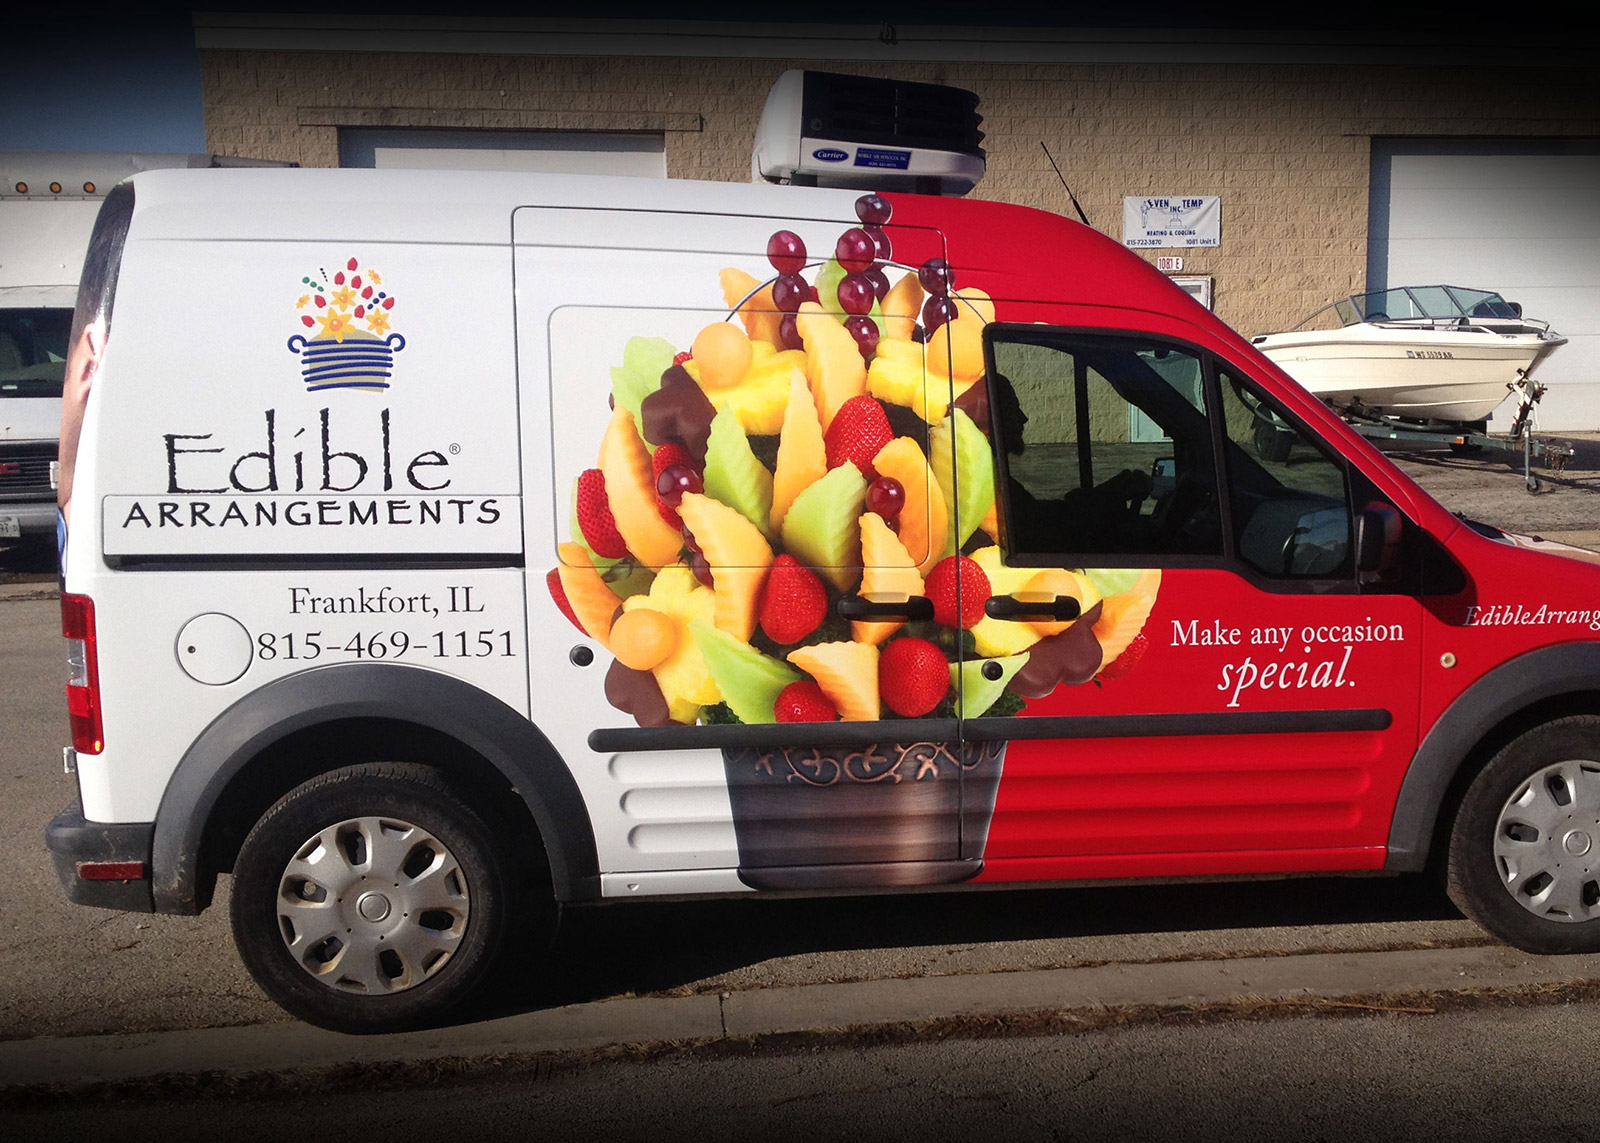 Edible-Arrangements